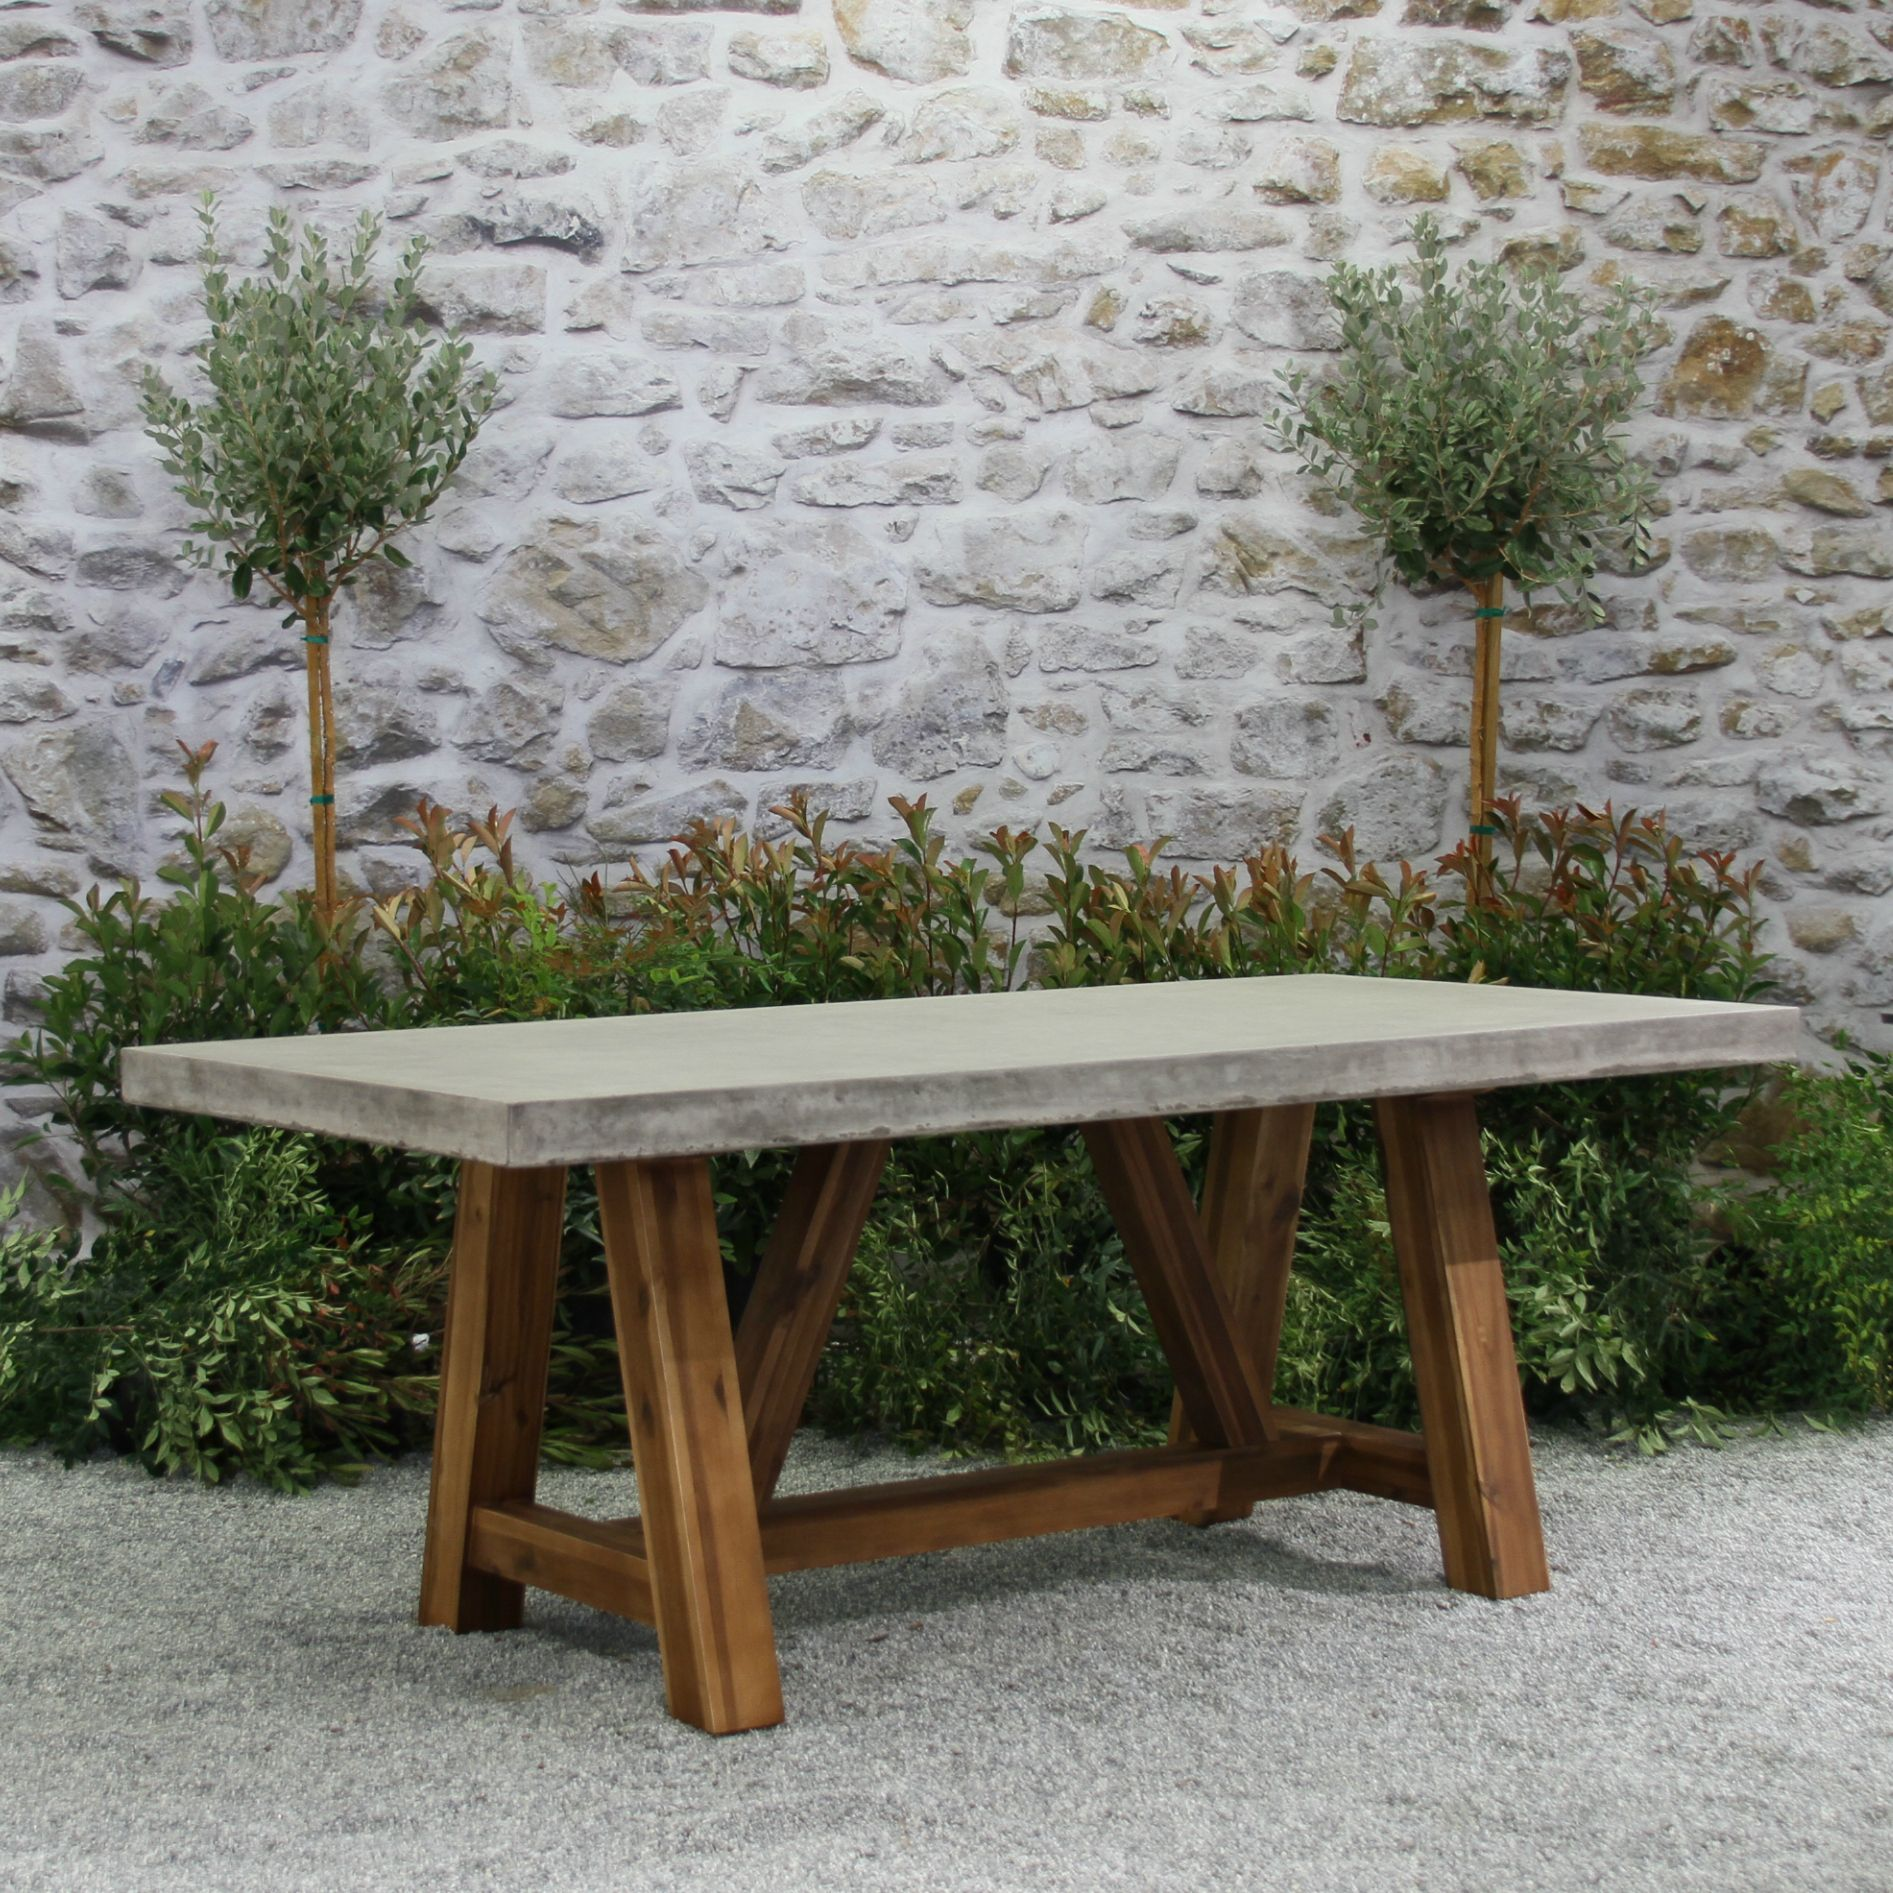 Sale Outdoor Bordeaux Table Concrete Top 94 In 2019 Furniture Teak